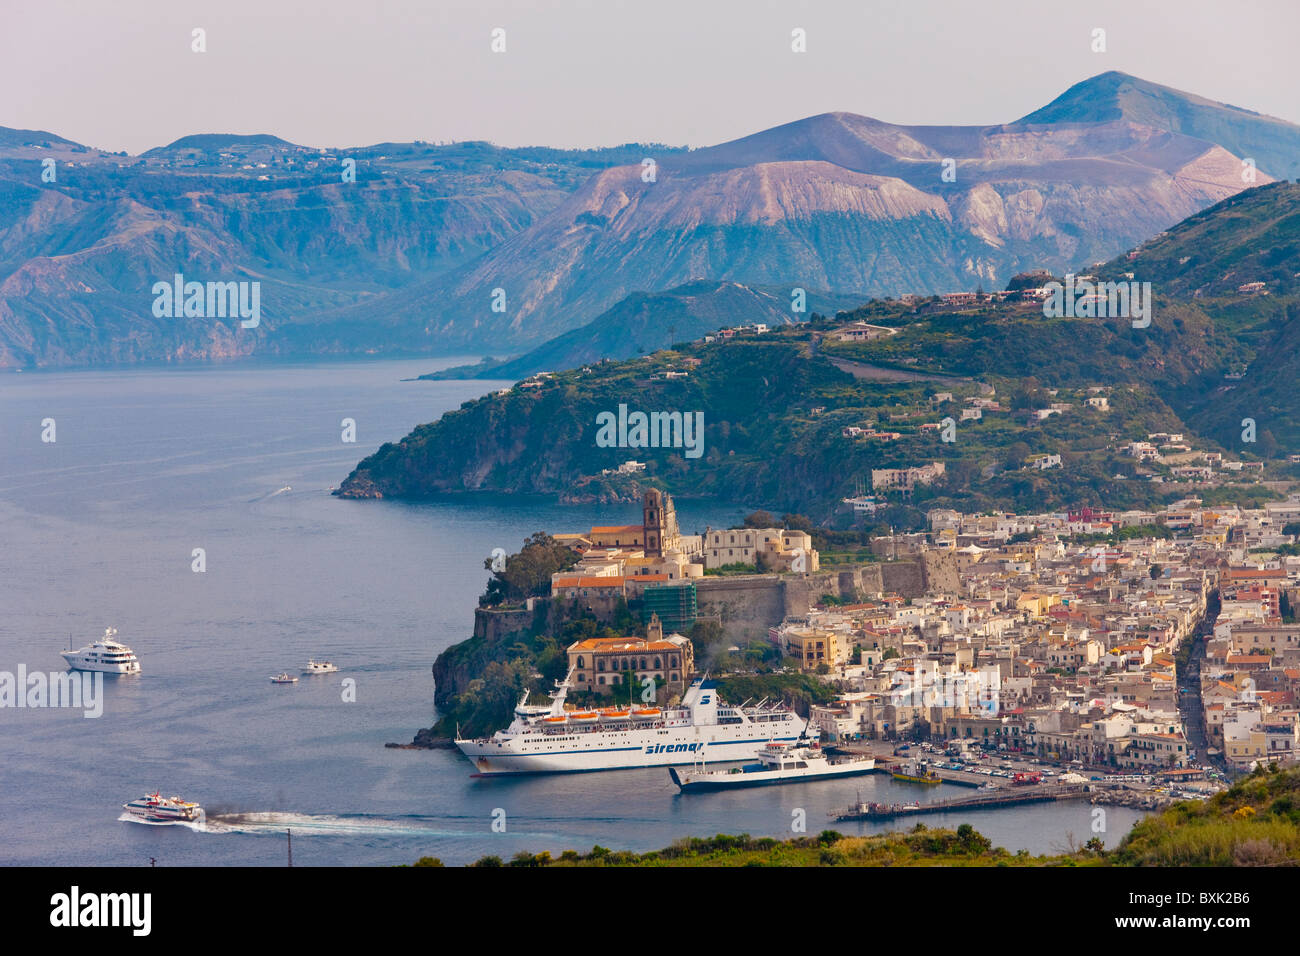 The town of Lipari, Lipari Island, Aeolian Islands, Italy, Europe - Stock Image